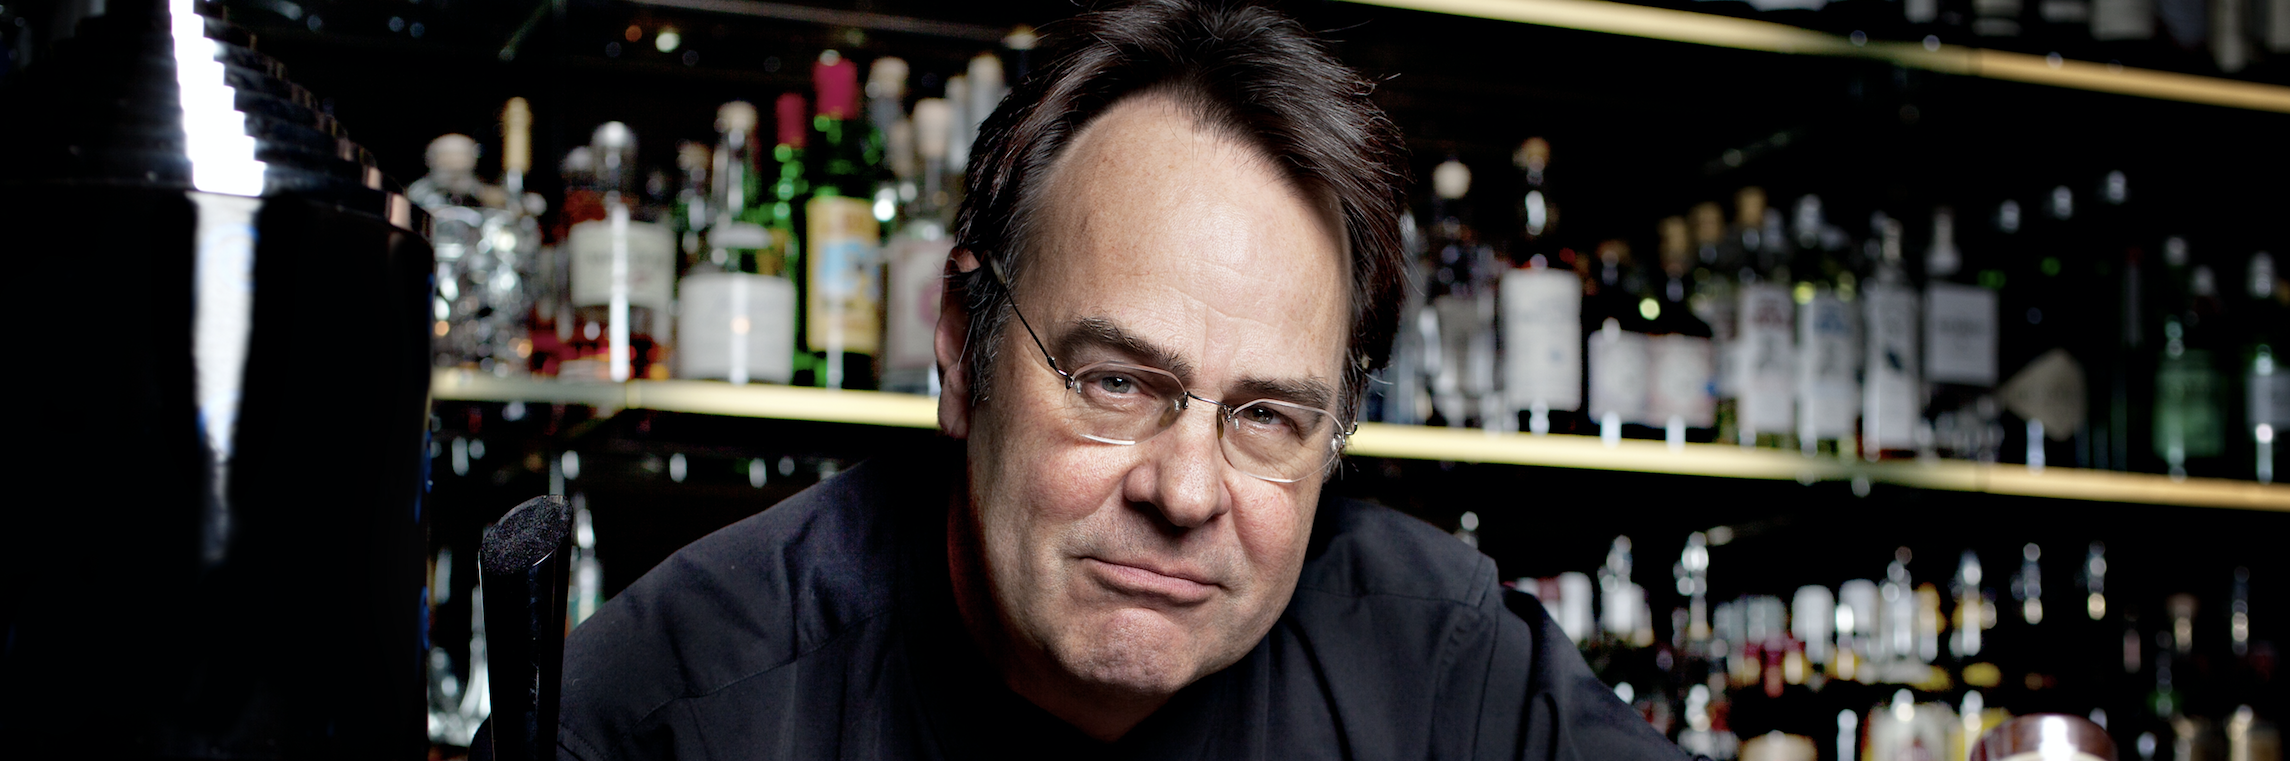 10 Questions With the Funniest Man in the Vodka Business: Dan Aykroyd